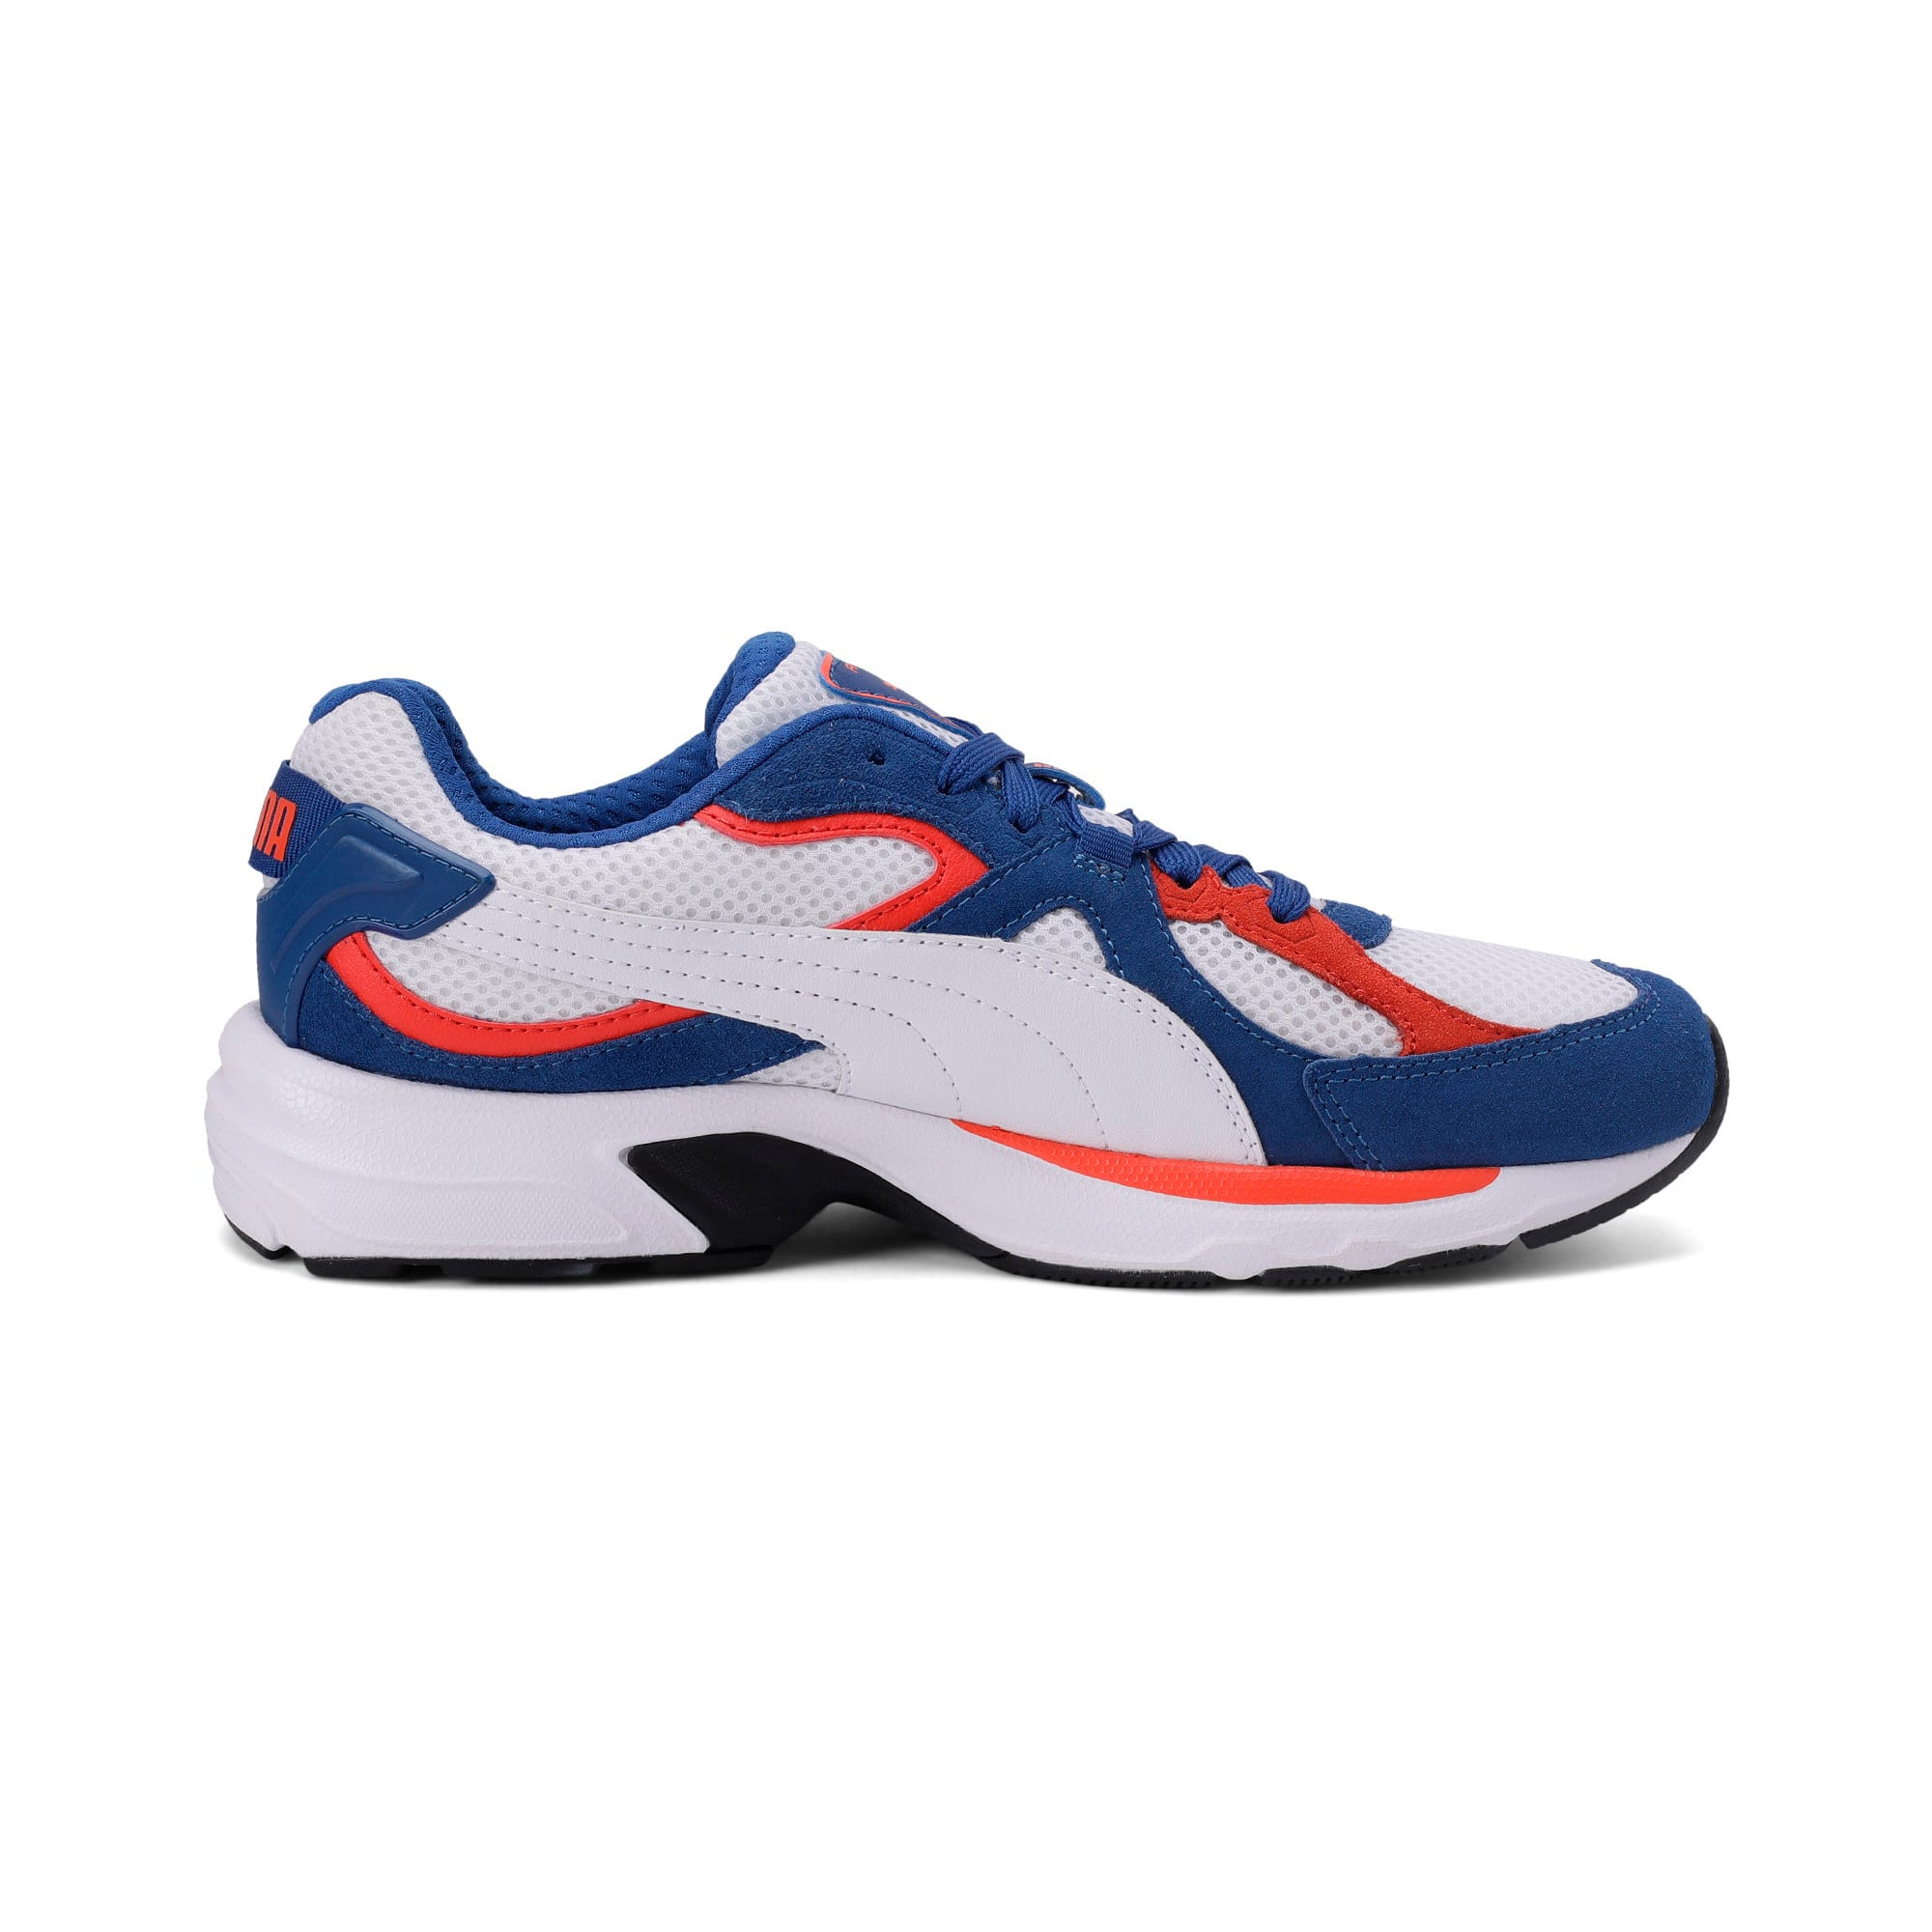 Thumbnail 7 of Axis Plus SD Trainers, White-G Blue-C Tomato-Black, medium-IND